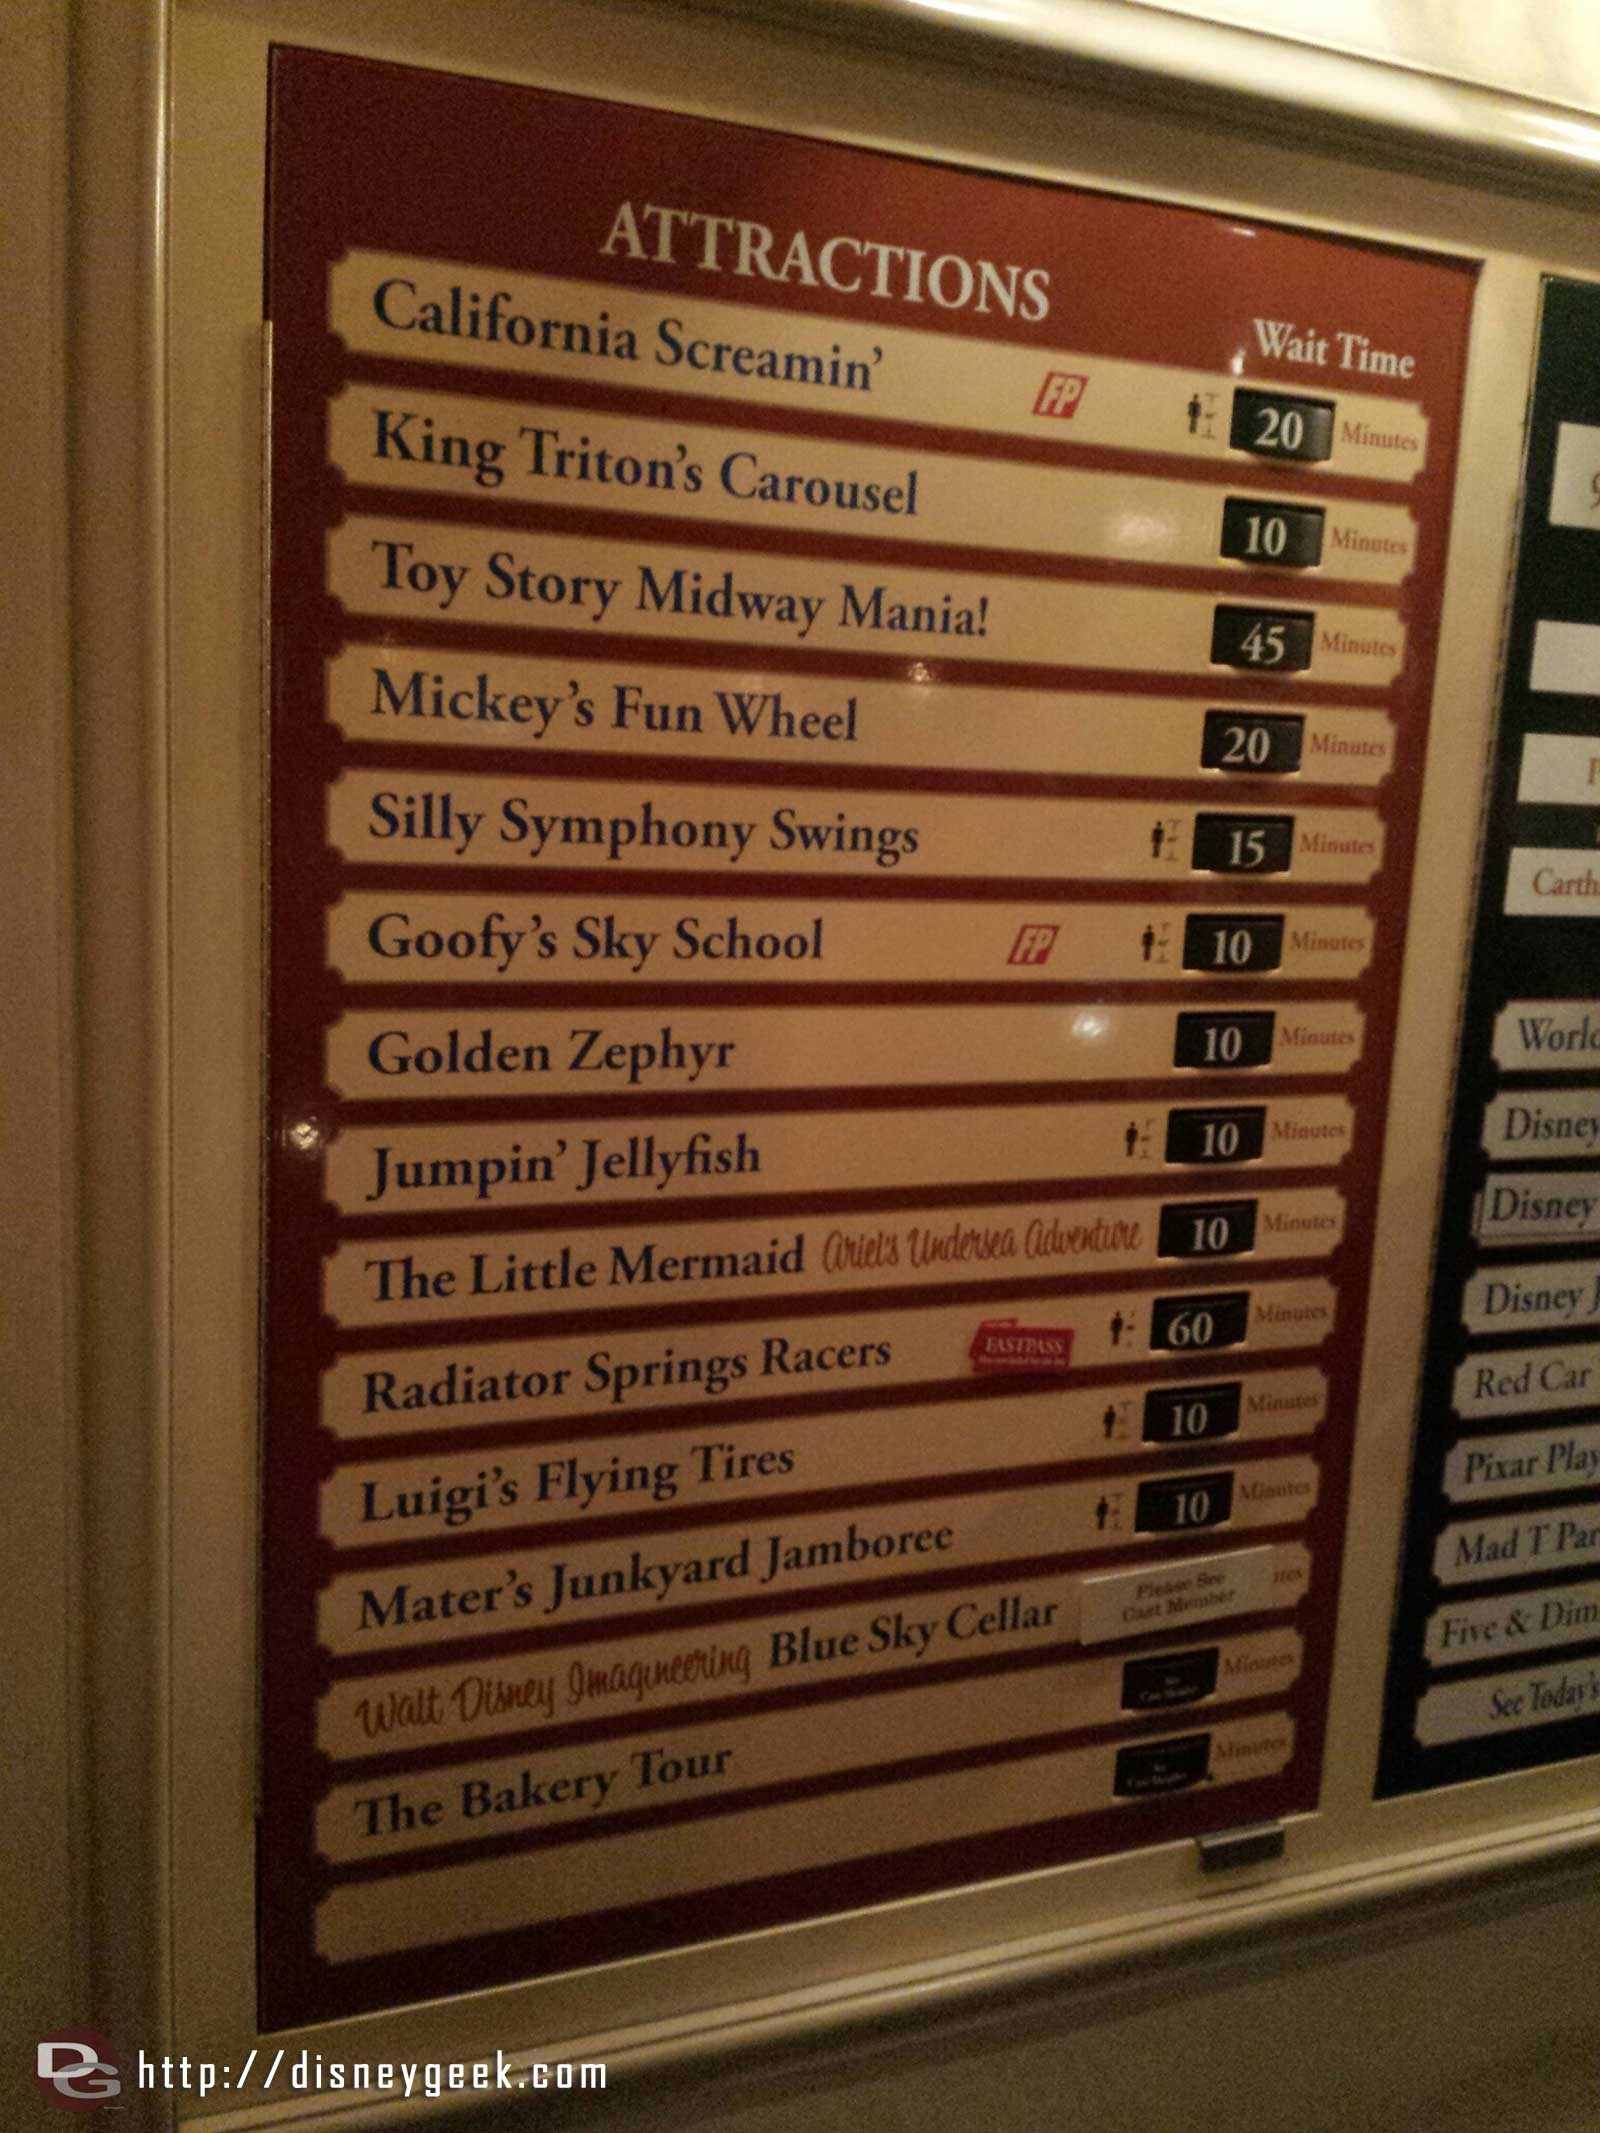 Some DCA waits as of 7:51pm